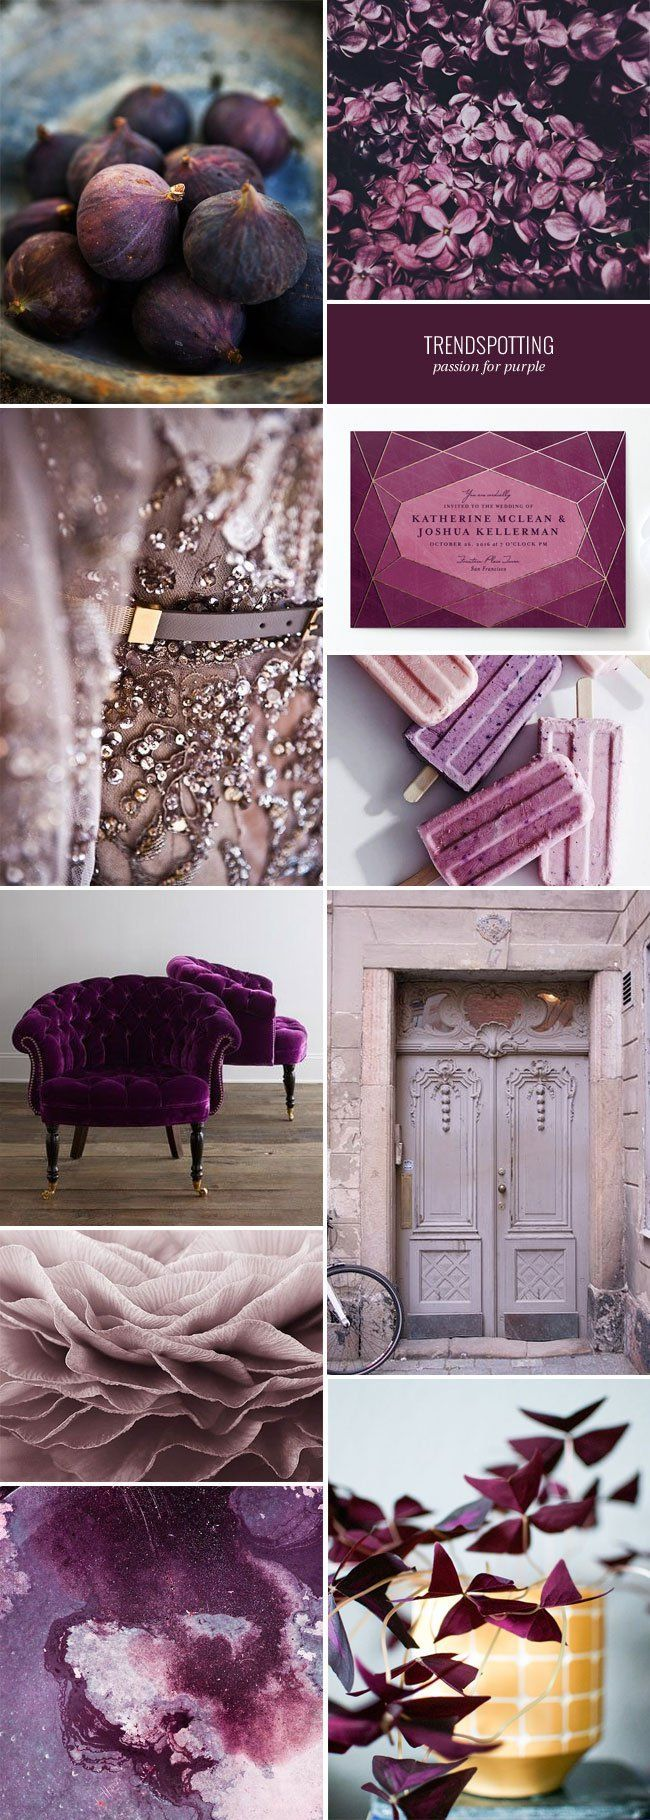 Trendspotting : Passion for Purple (paper crave) #moodboards